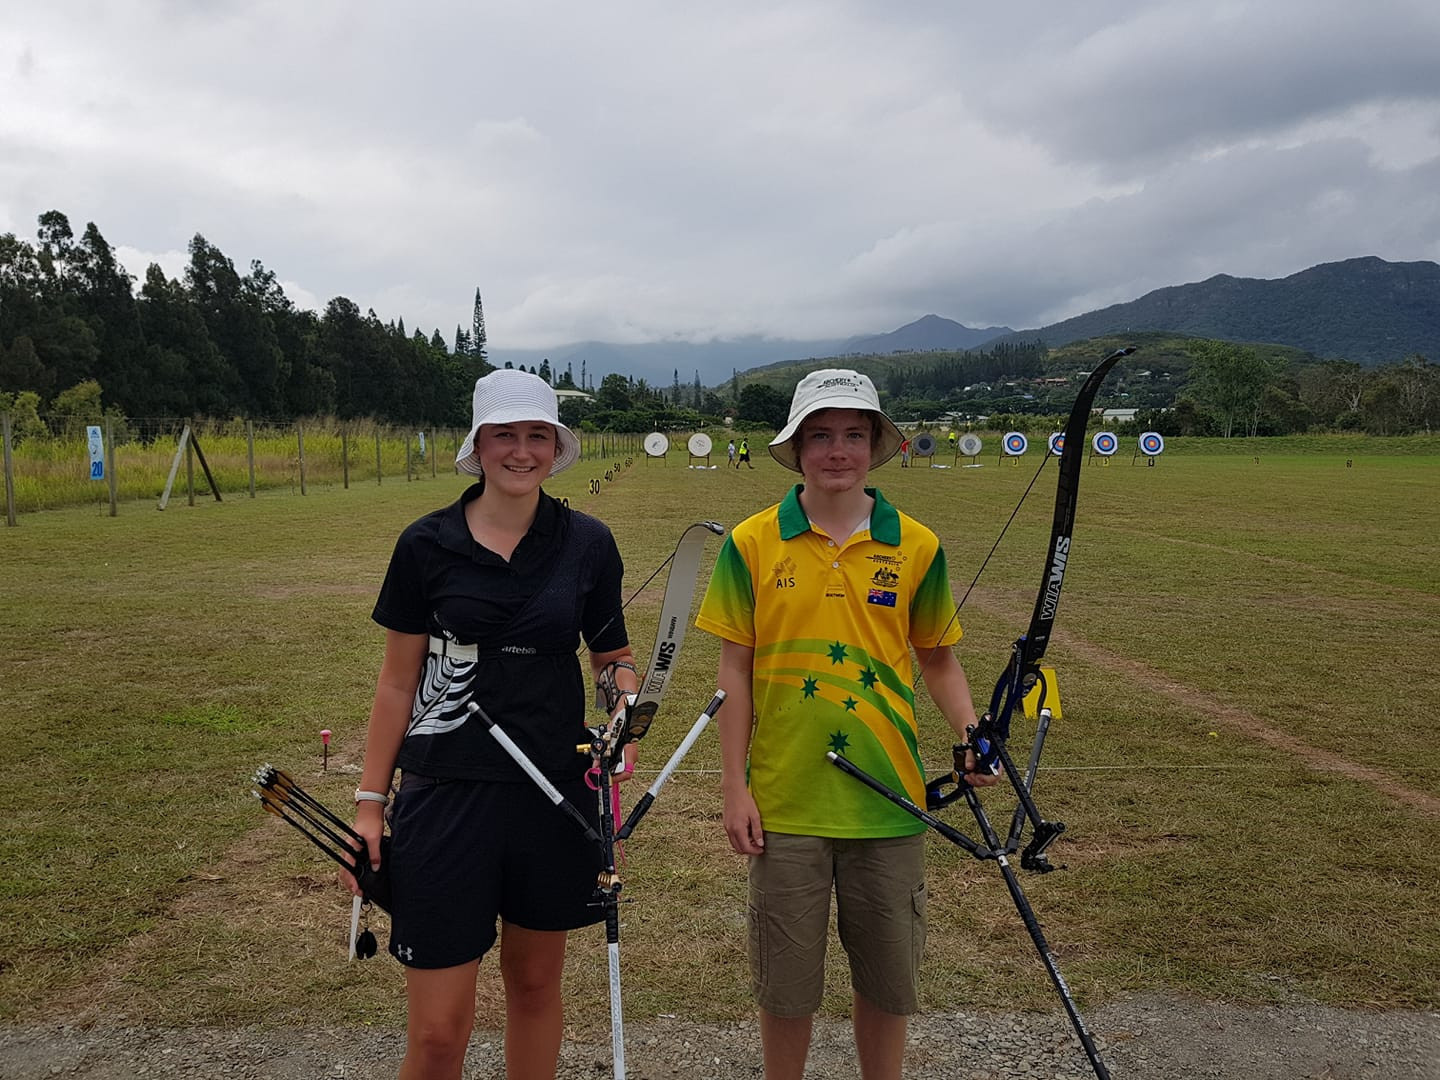 Australia and New Zealand earn Buenos Aires 2018 archery quota places in New Caledonia